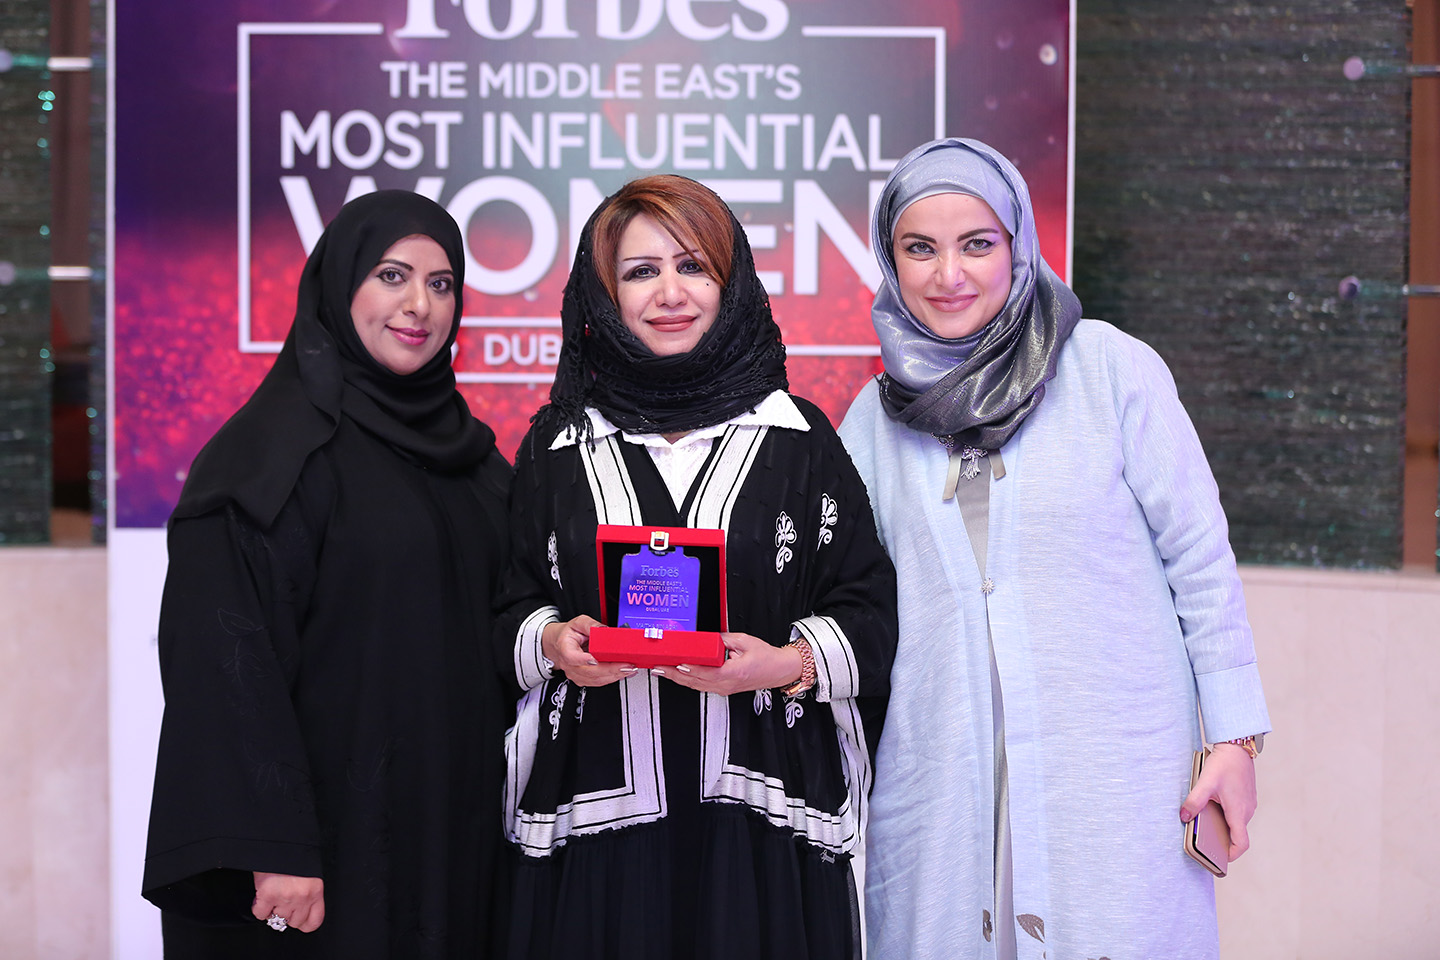 The Middle East's Most Influential Women